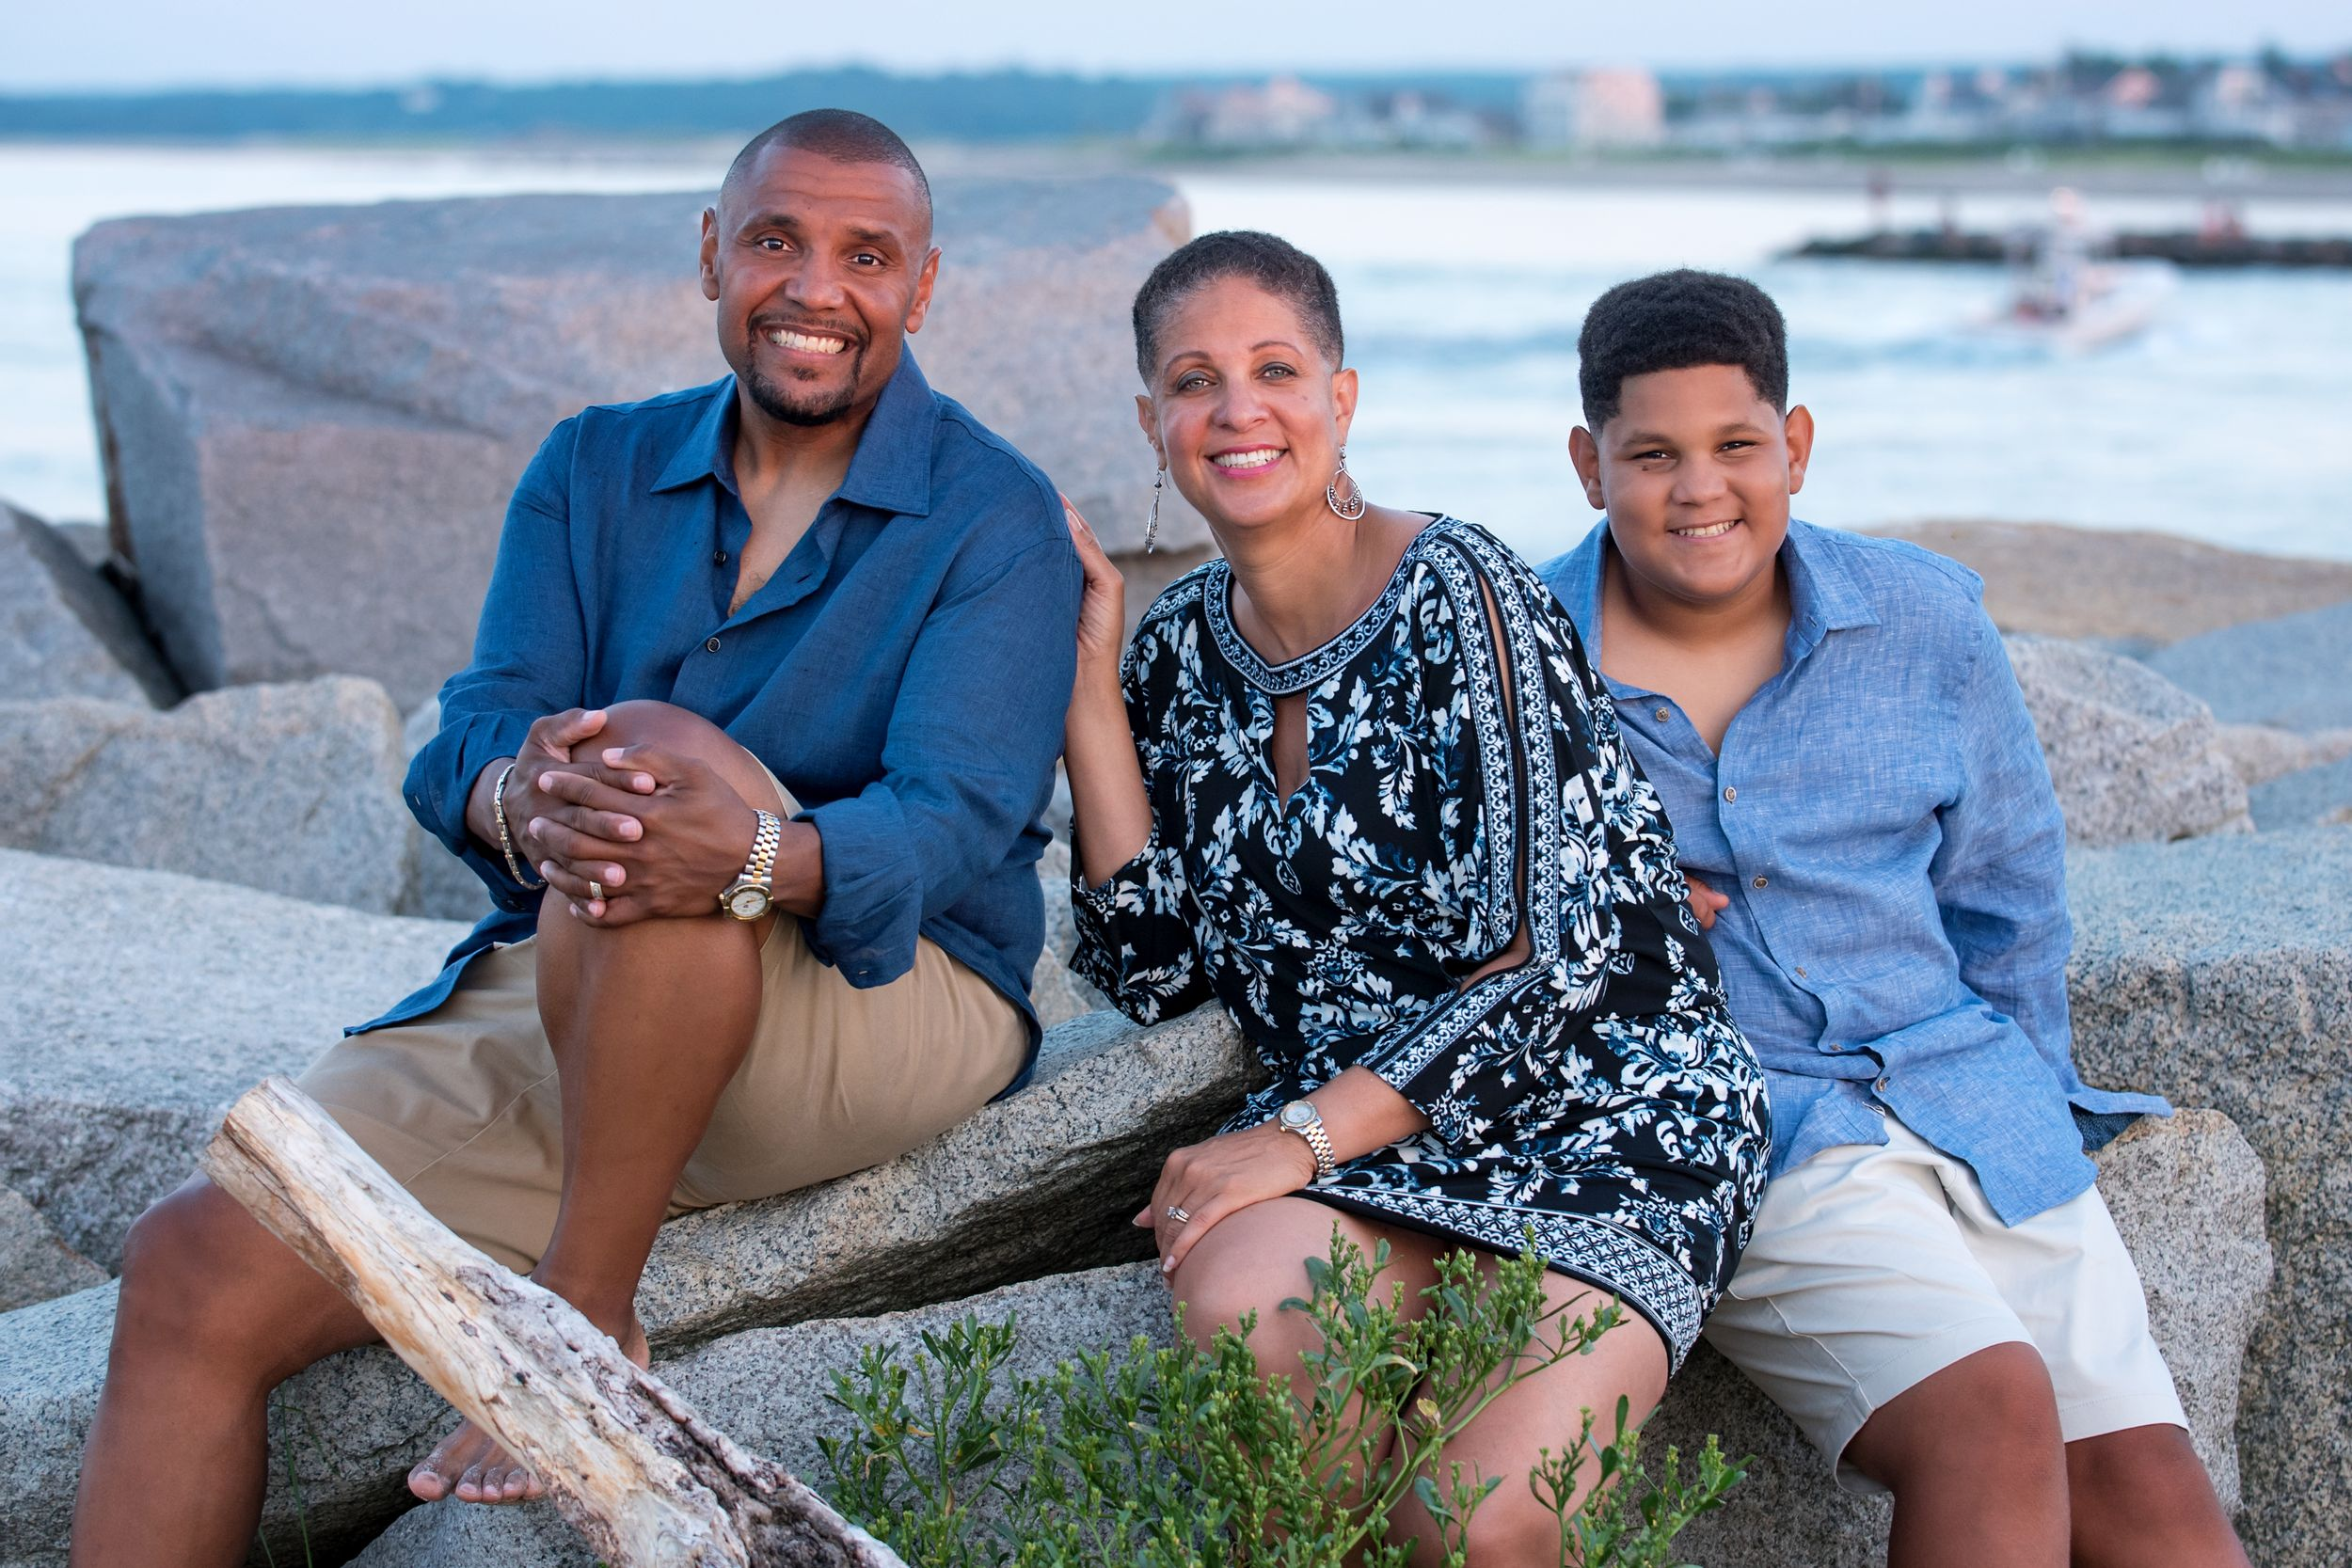 plymouth, ma | family beach portraits | heidi harting photography | beautiful family of 3 photographed on large rocks